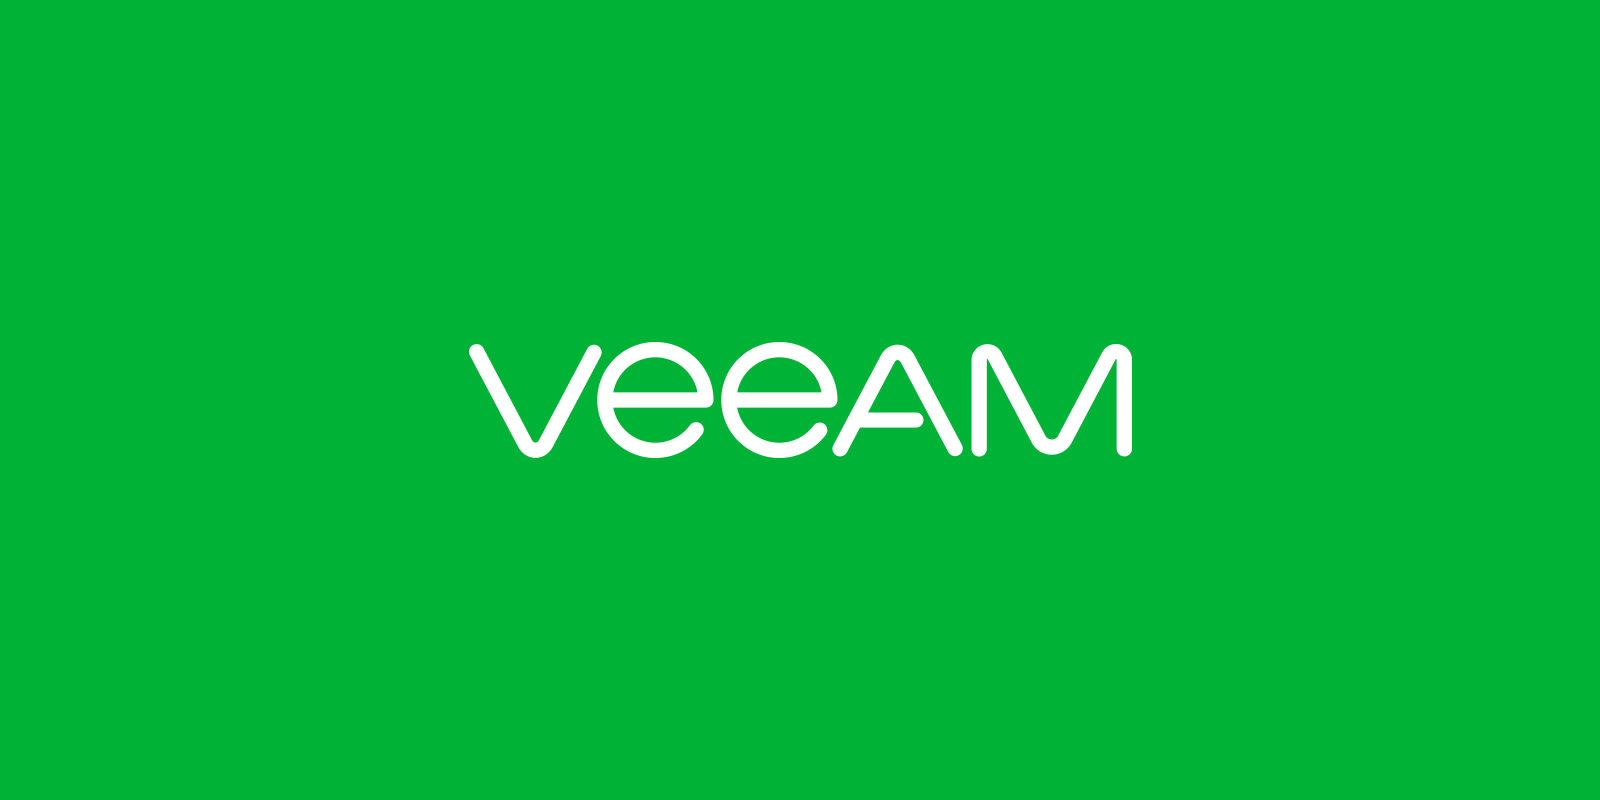 Veeam Software Official Blog - Virtualization technologies ...